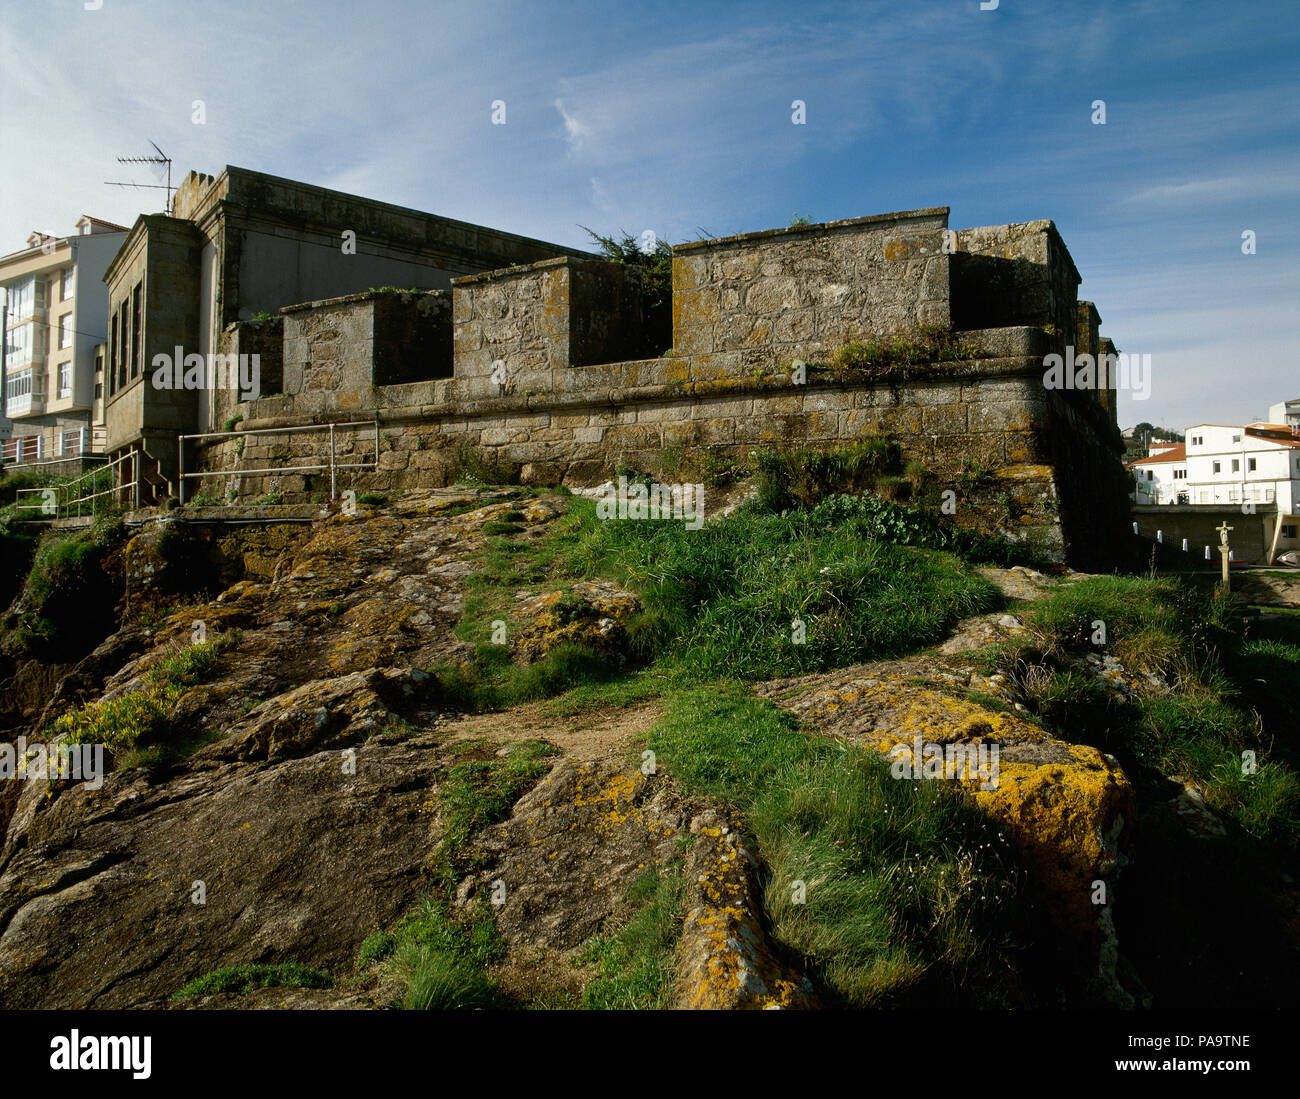 Spain, Galicia, La Coruña province, Fisterra (Finisterre). Saint Charles Castle. Fortification built during the reign of Charles III of Spain, to defend the coast from English attacks, 18th century. Coast of Death. - Stock Image